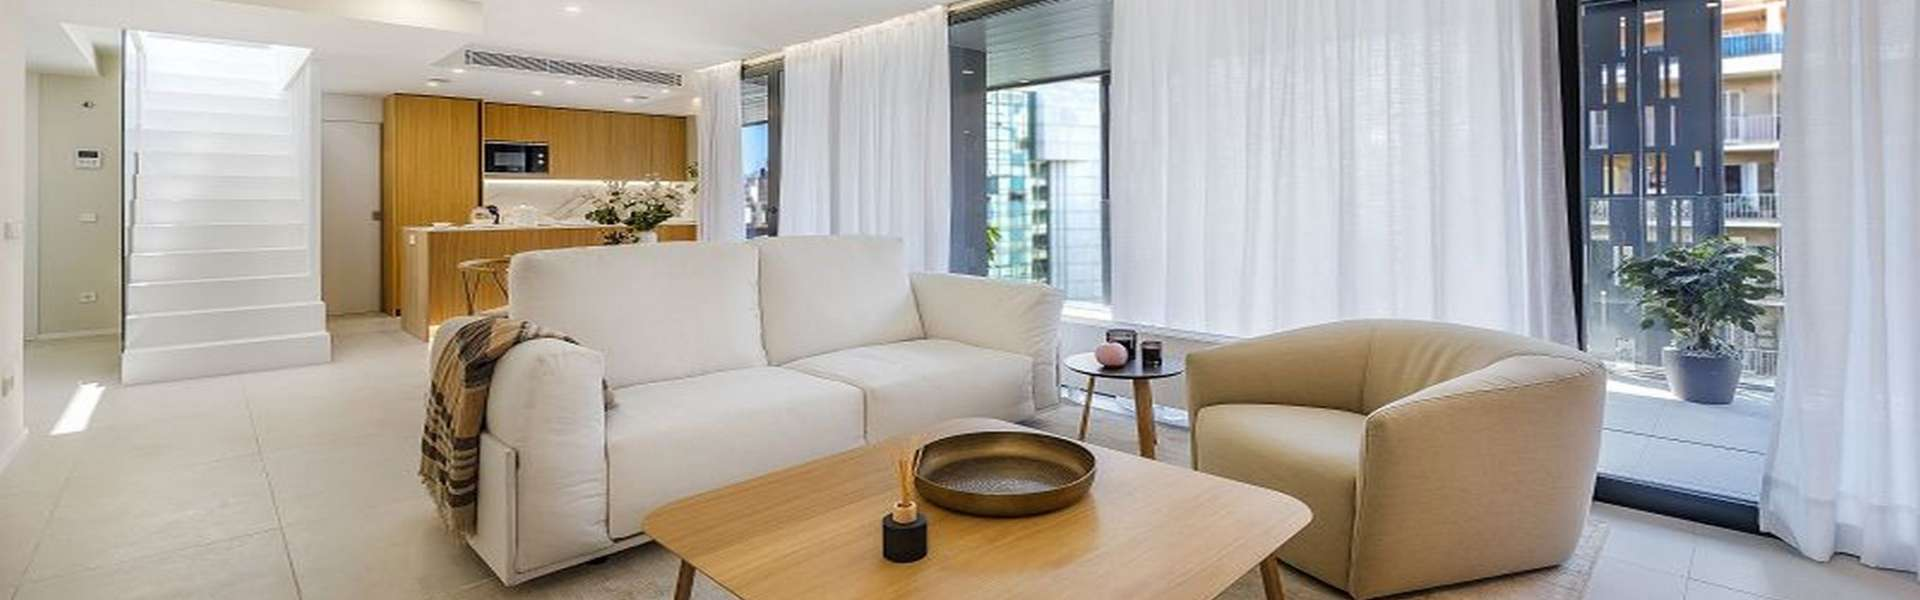 Palma/center - Penthouse in top location